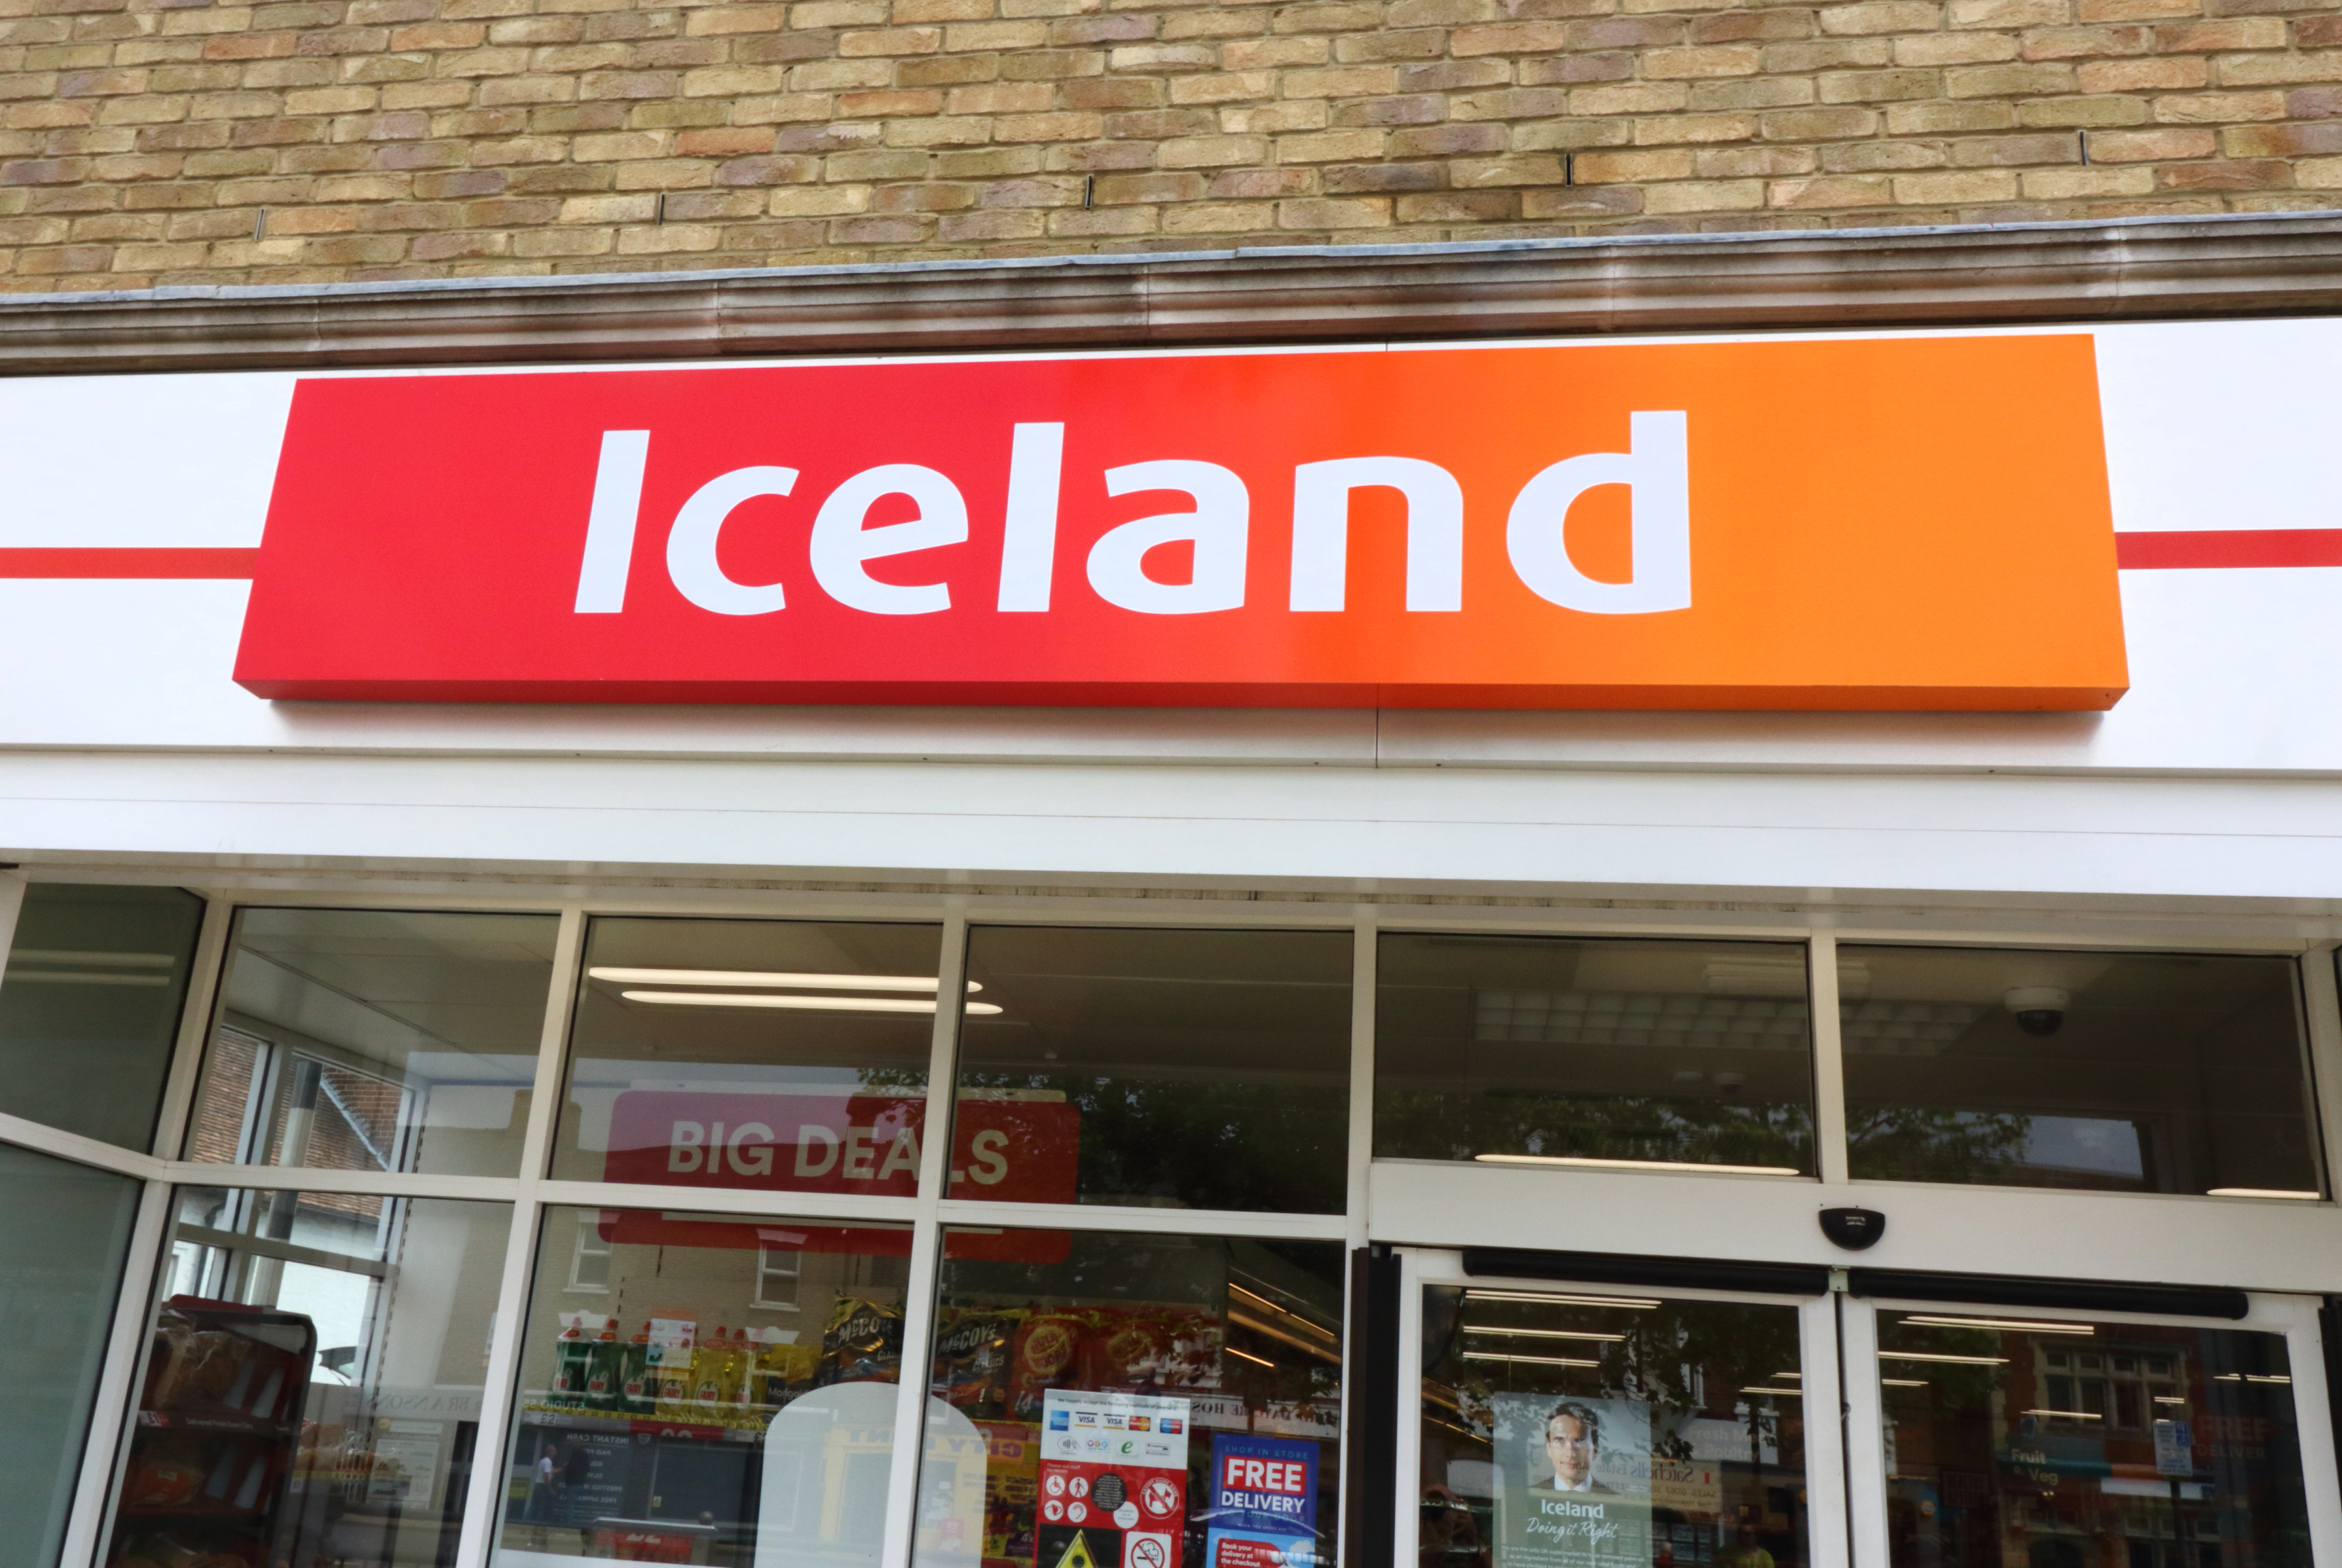 -, UNITED KINGDOM - 2019/05/19: An Iceland store sign seen outside the store, One of the Top Ten Supermarket chains / brands in the United Kingdom. (Photo by Keith Mayhew/SOPA Images/LightRocket via Getty Images)